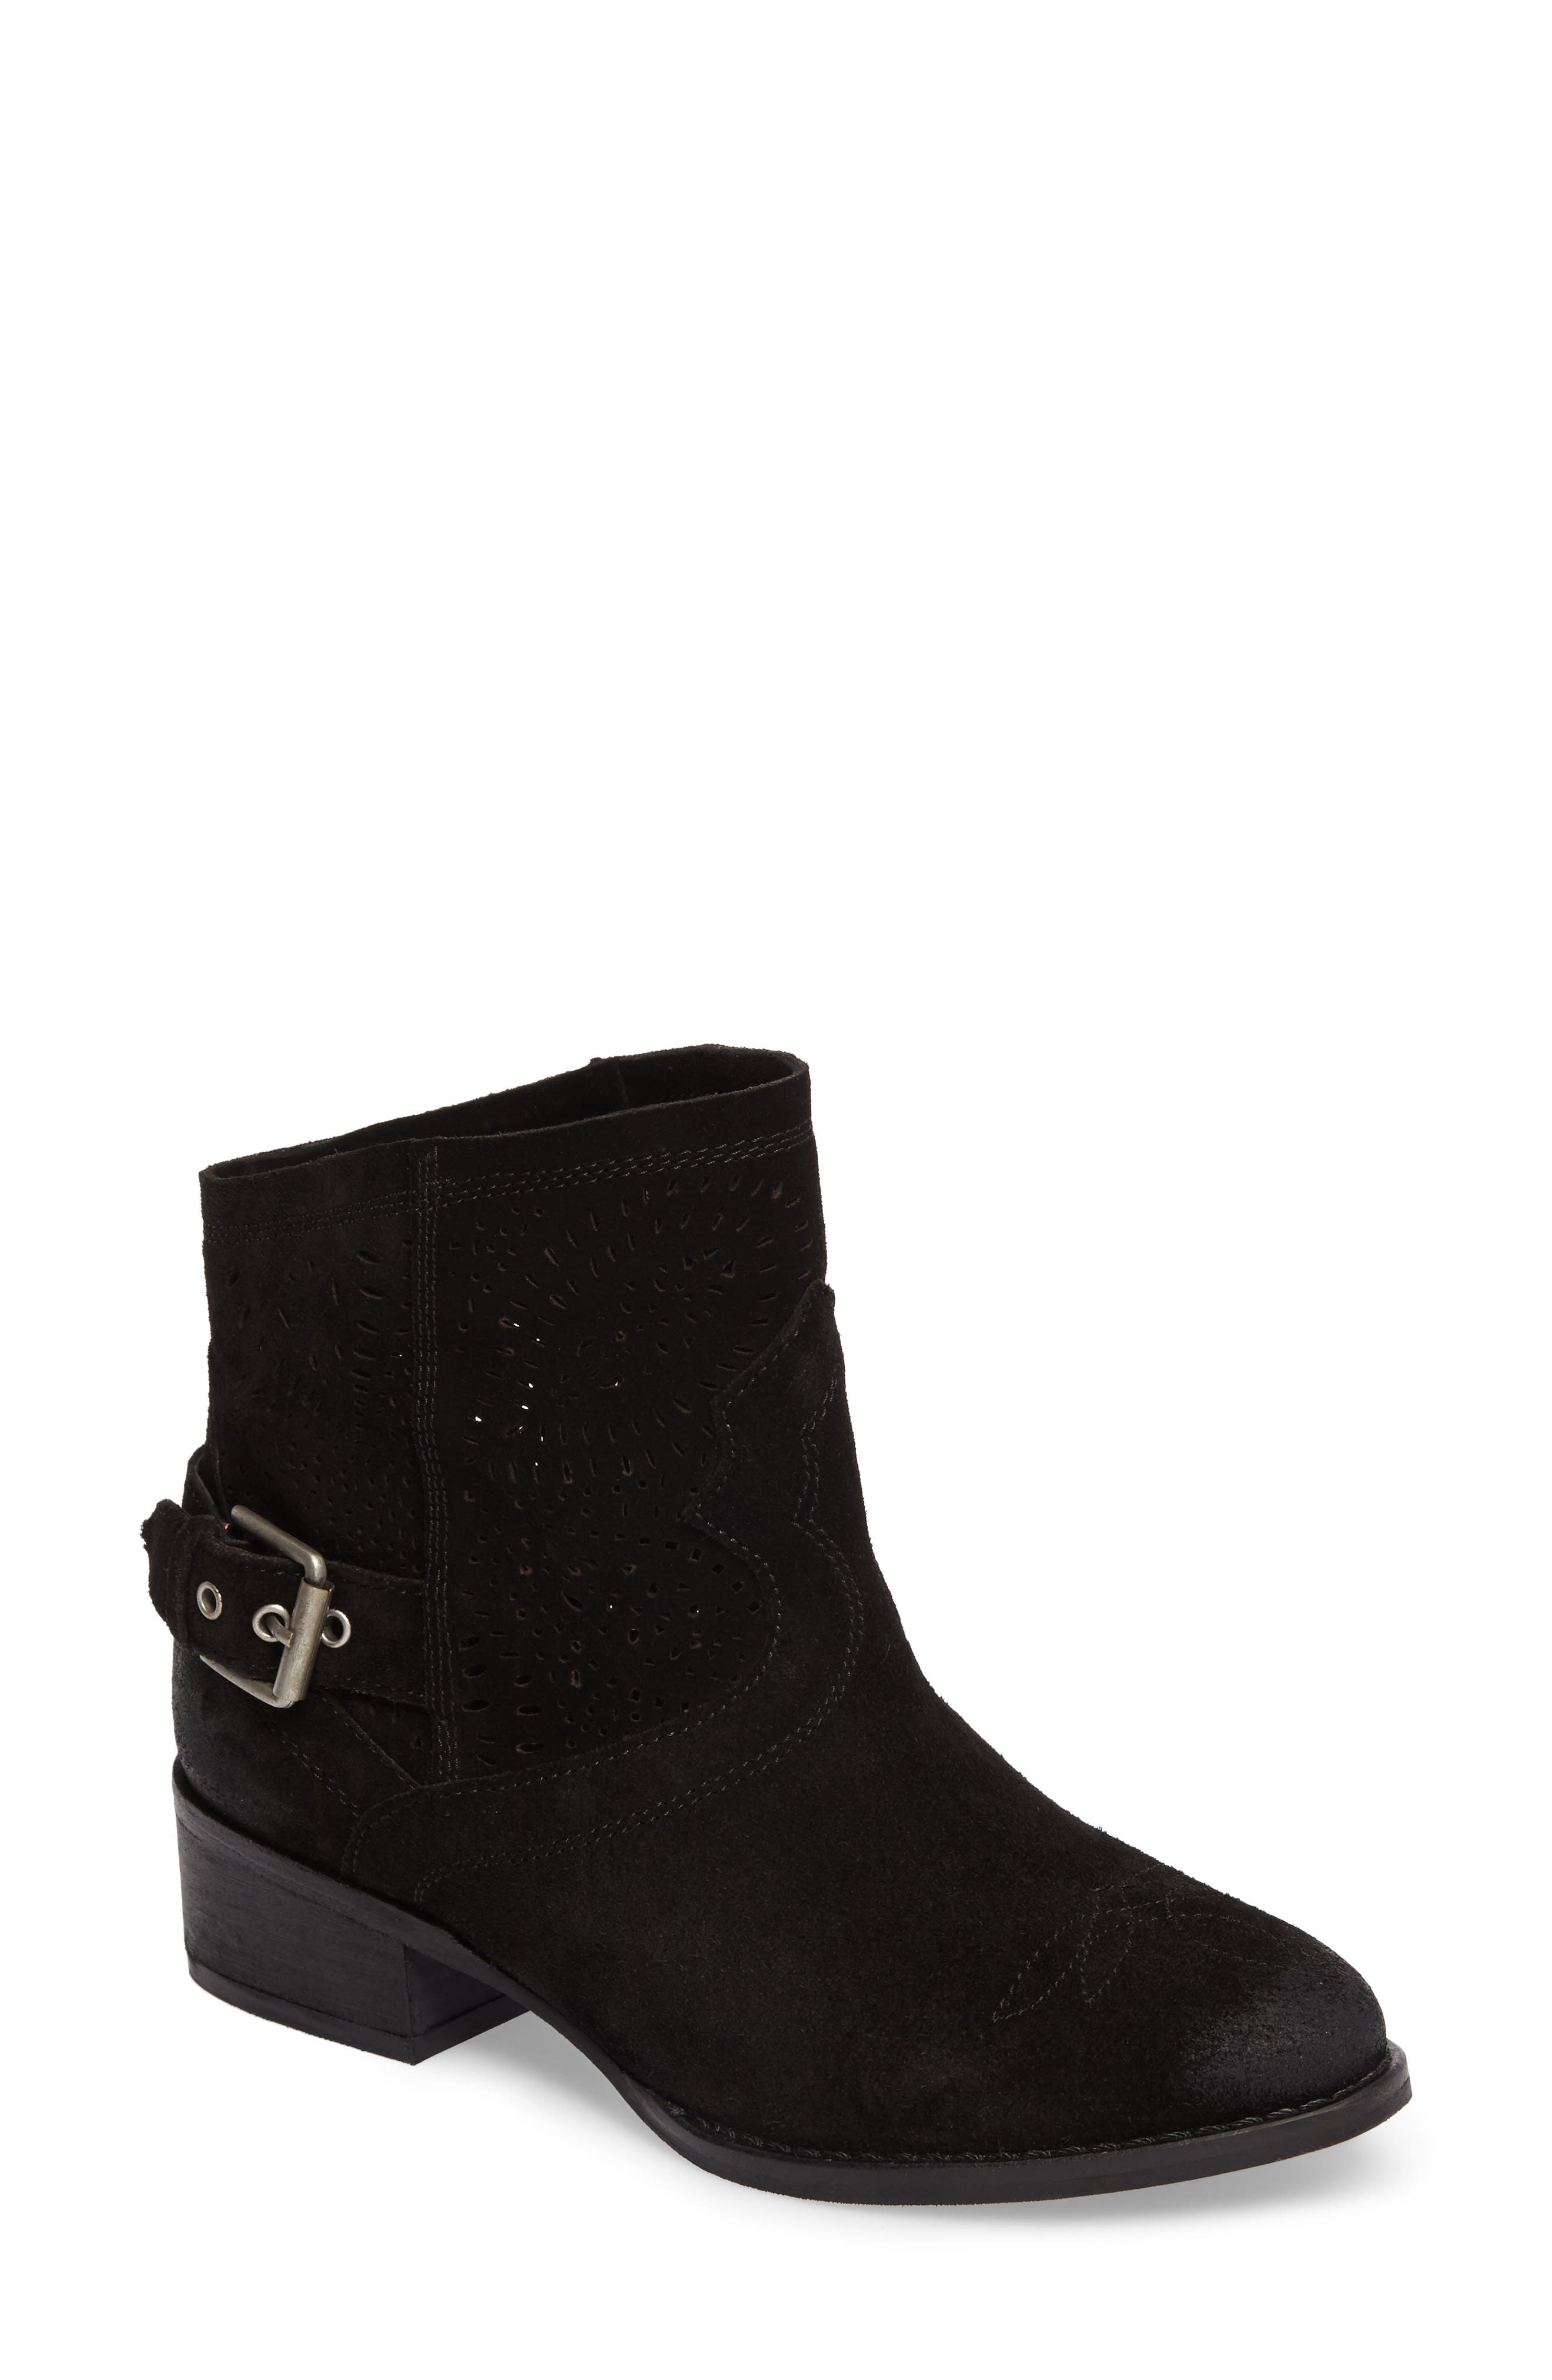 Zoey Perforated Bootie,                             Main thumbnail 1, color,                             Black Suede